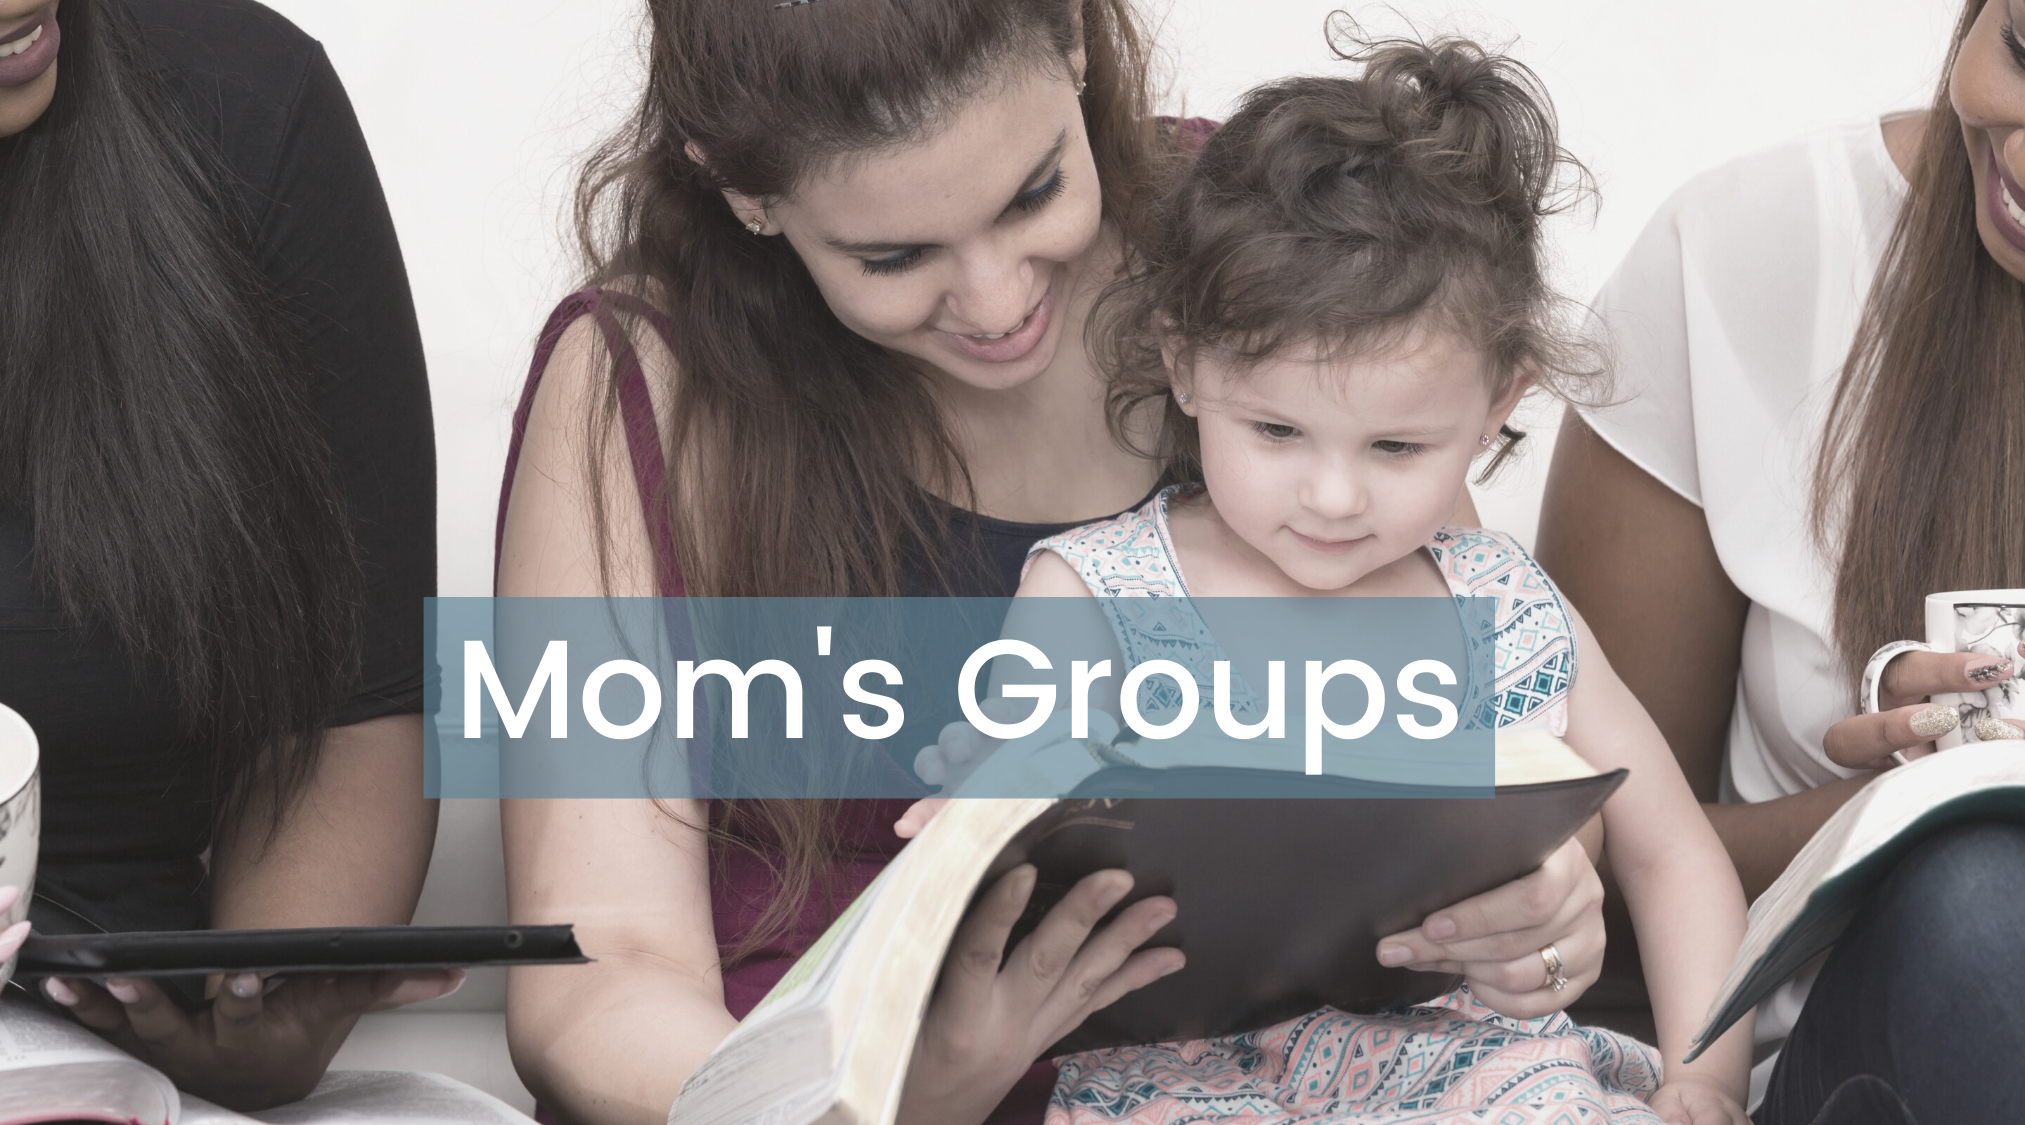 Mom's Groups